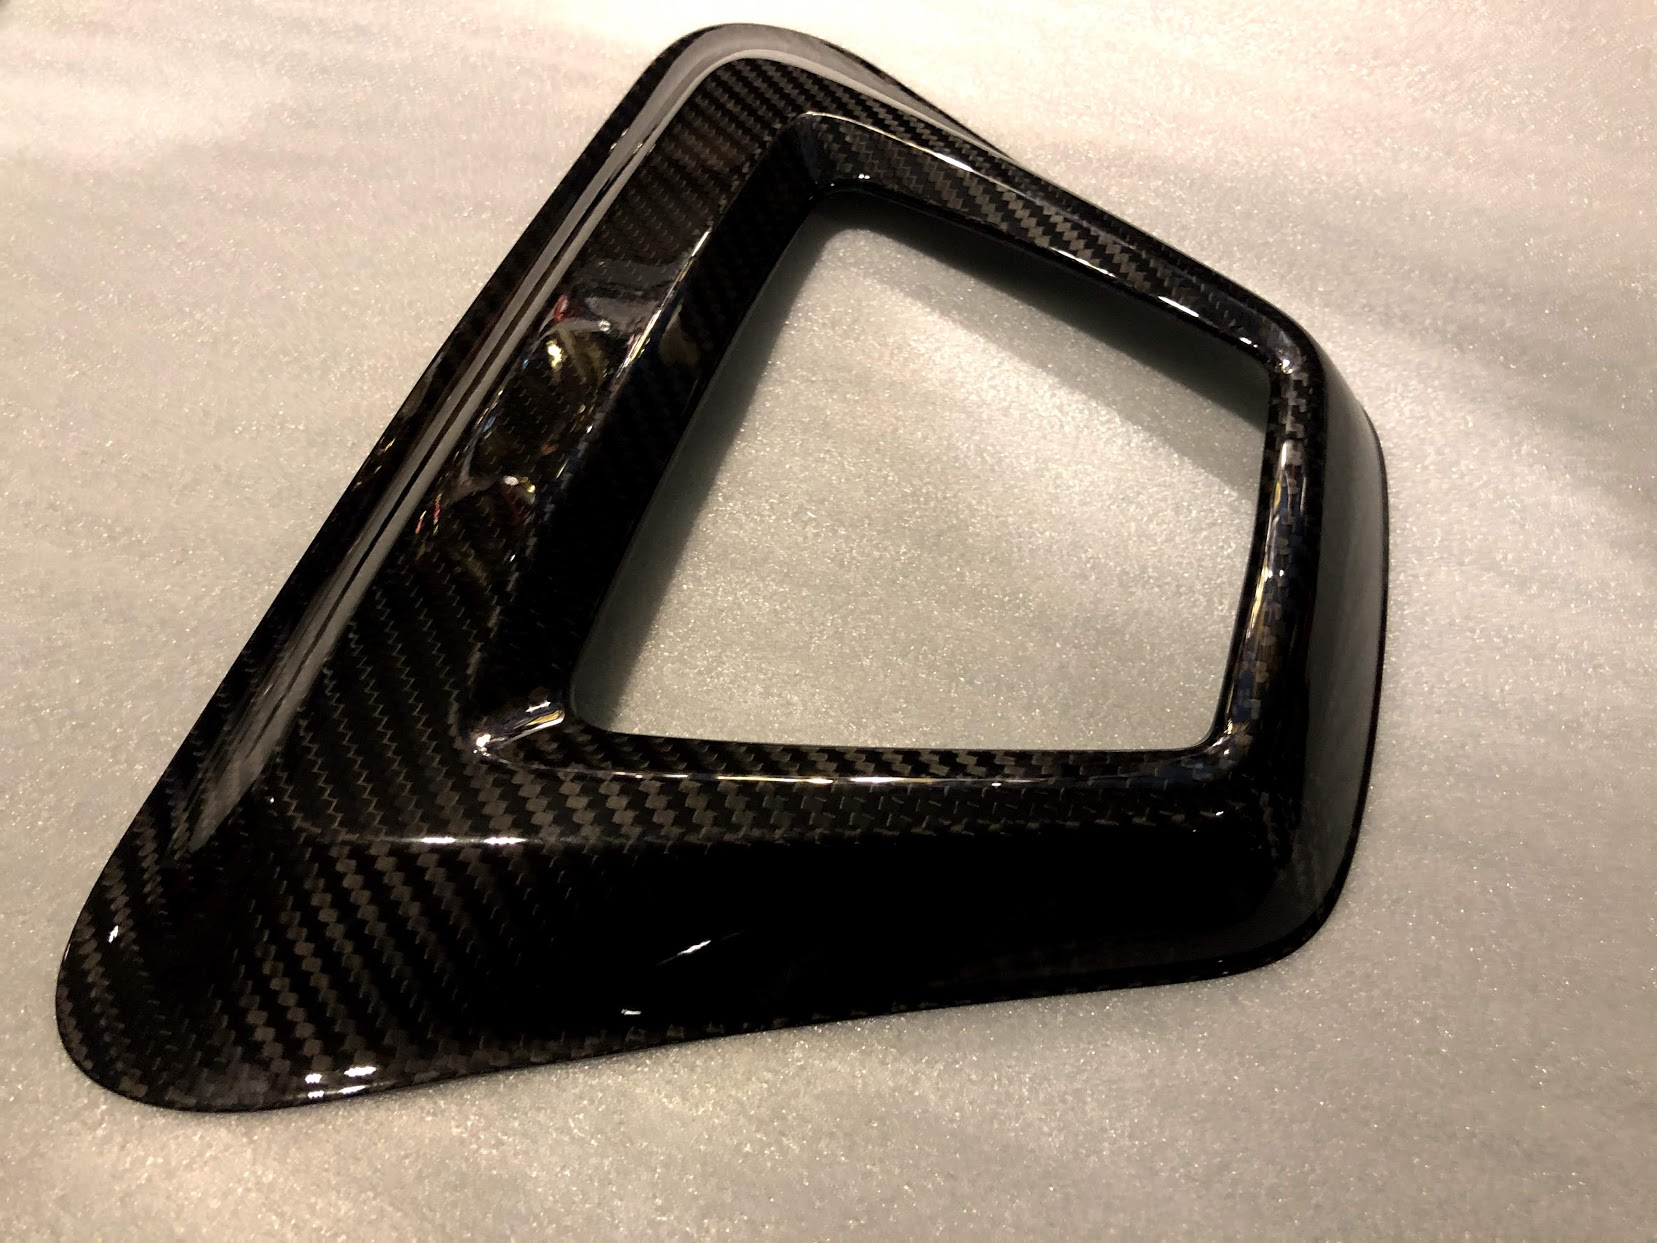 New Supra A90 MK5 Carbon rear LED bumper cover